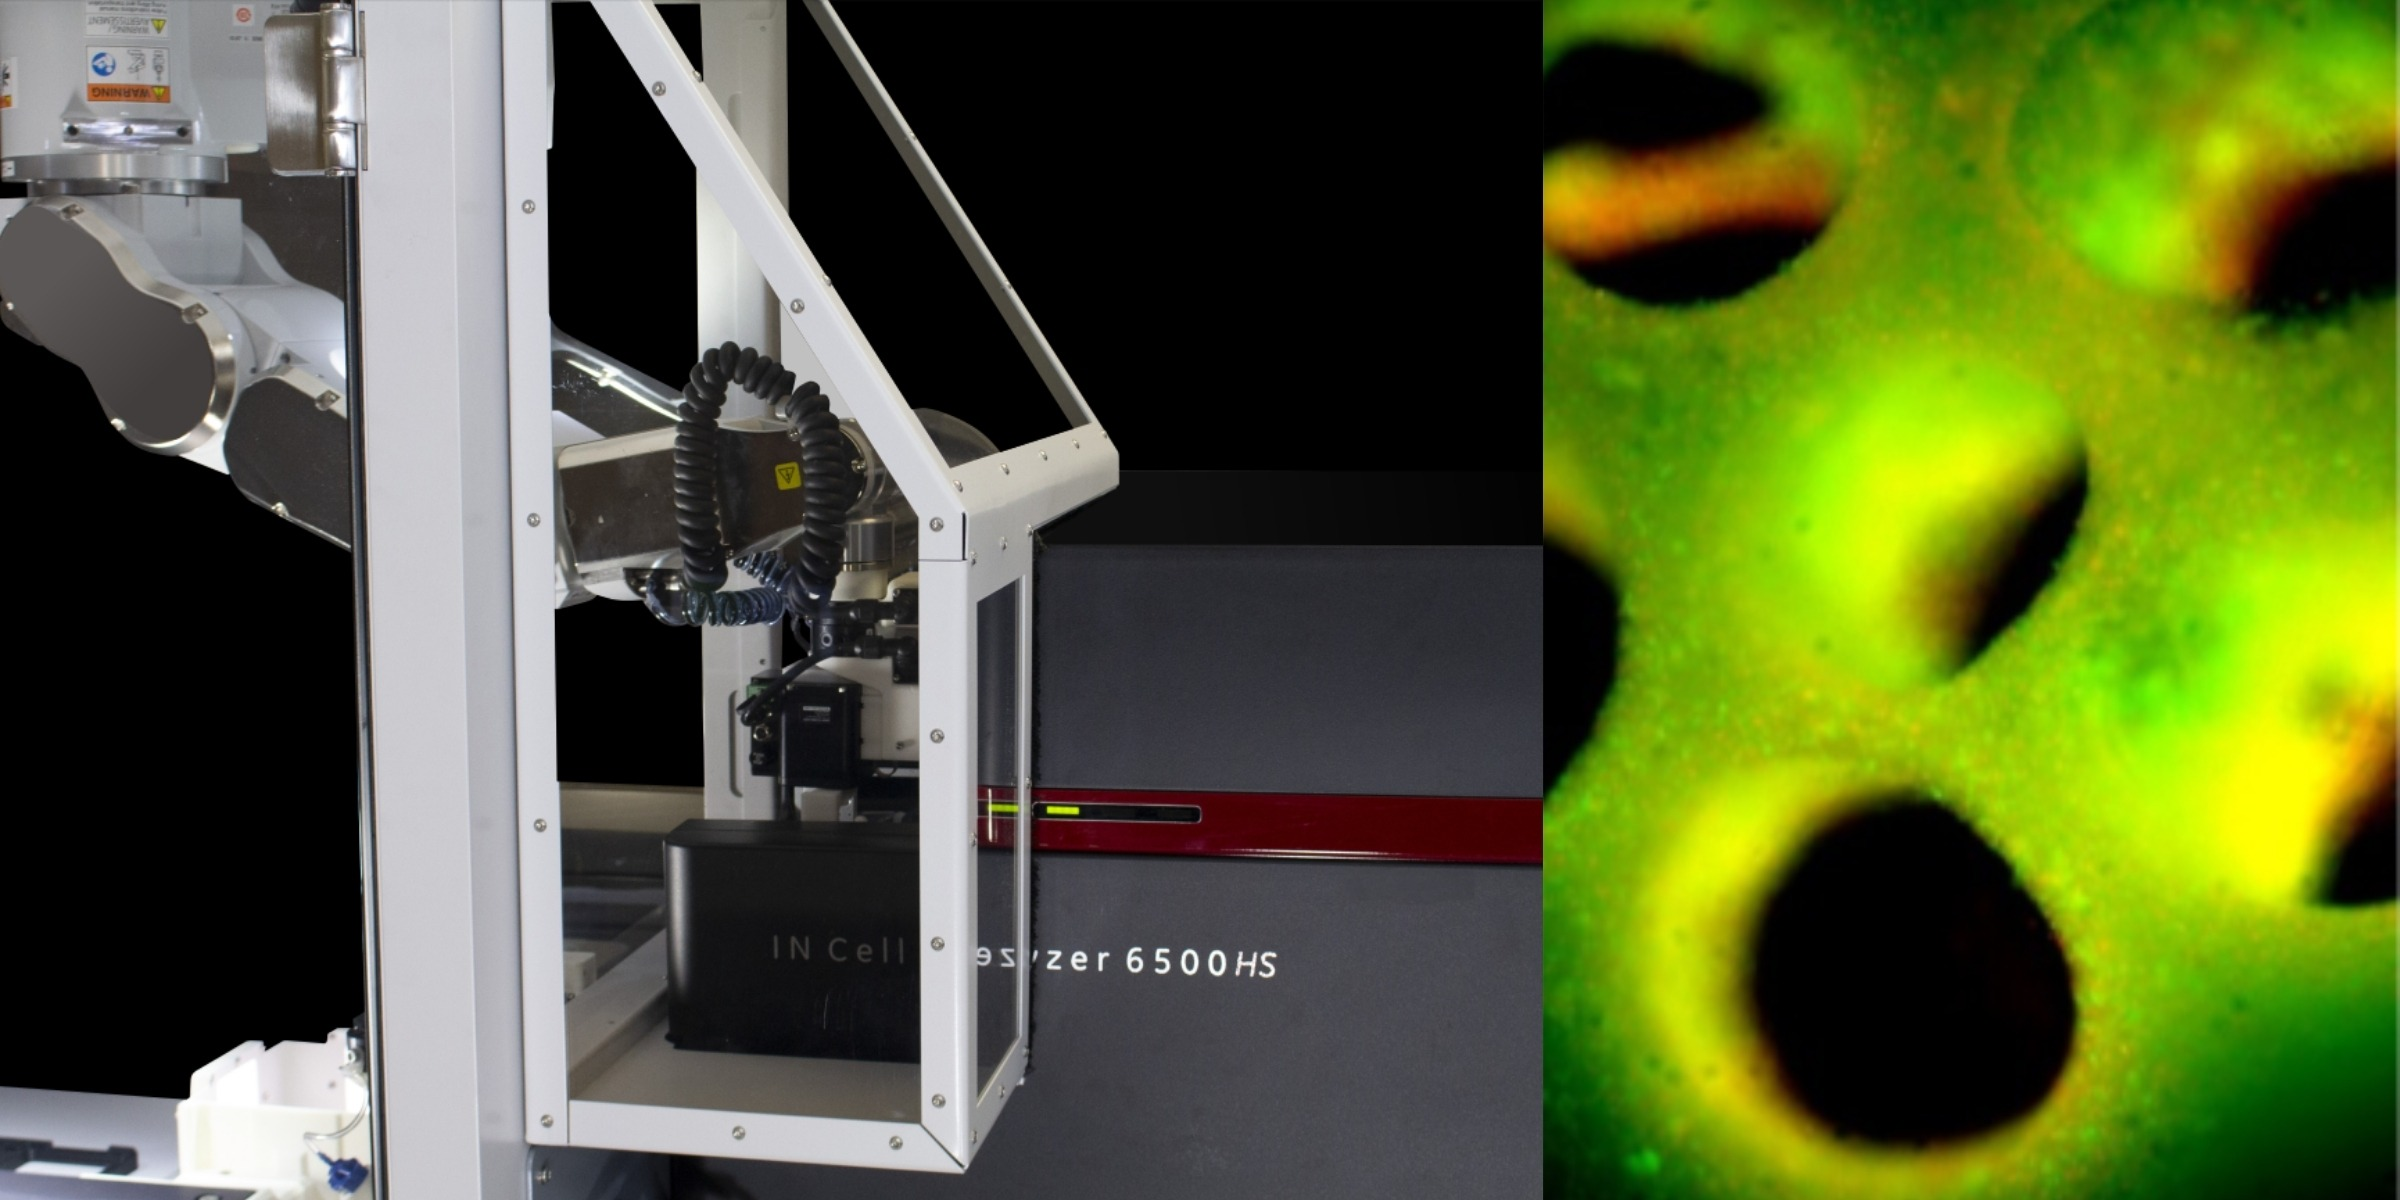 Image: Integrated biofabrication system used to produce and scan thick, vascularized 3D liver tissue models. Photo: Courtesy of Business Wire.